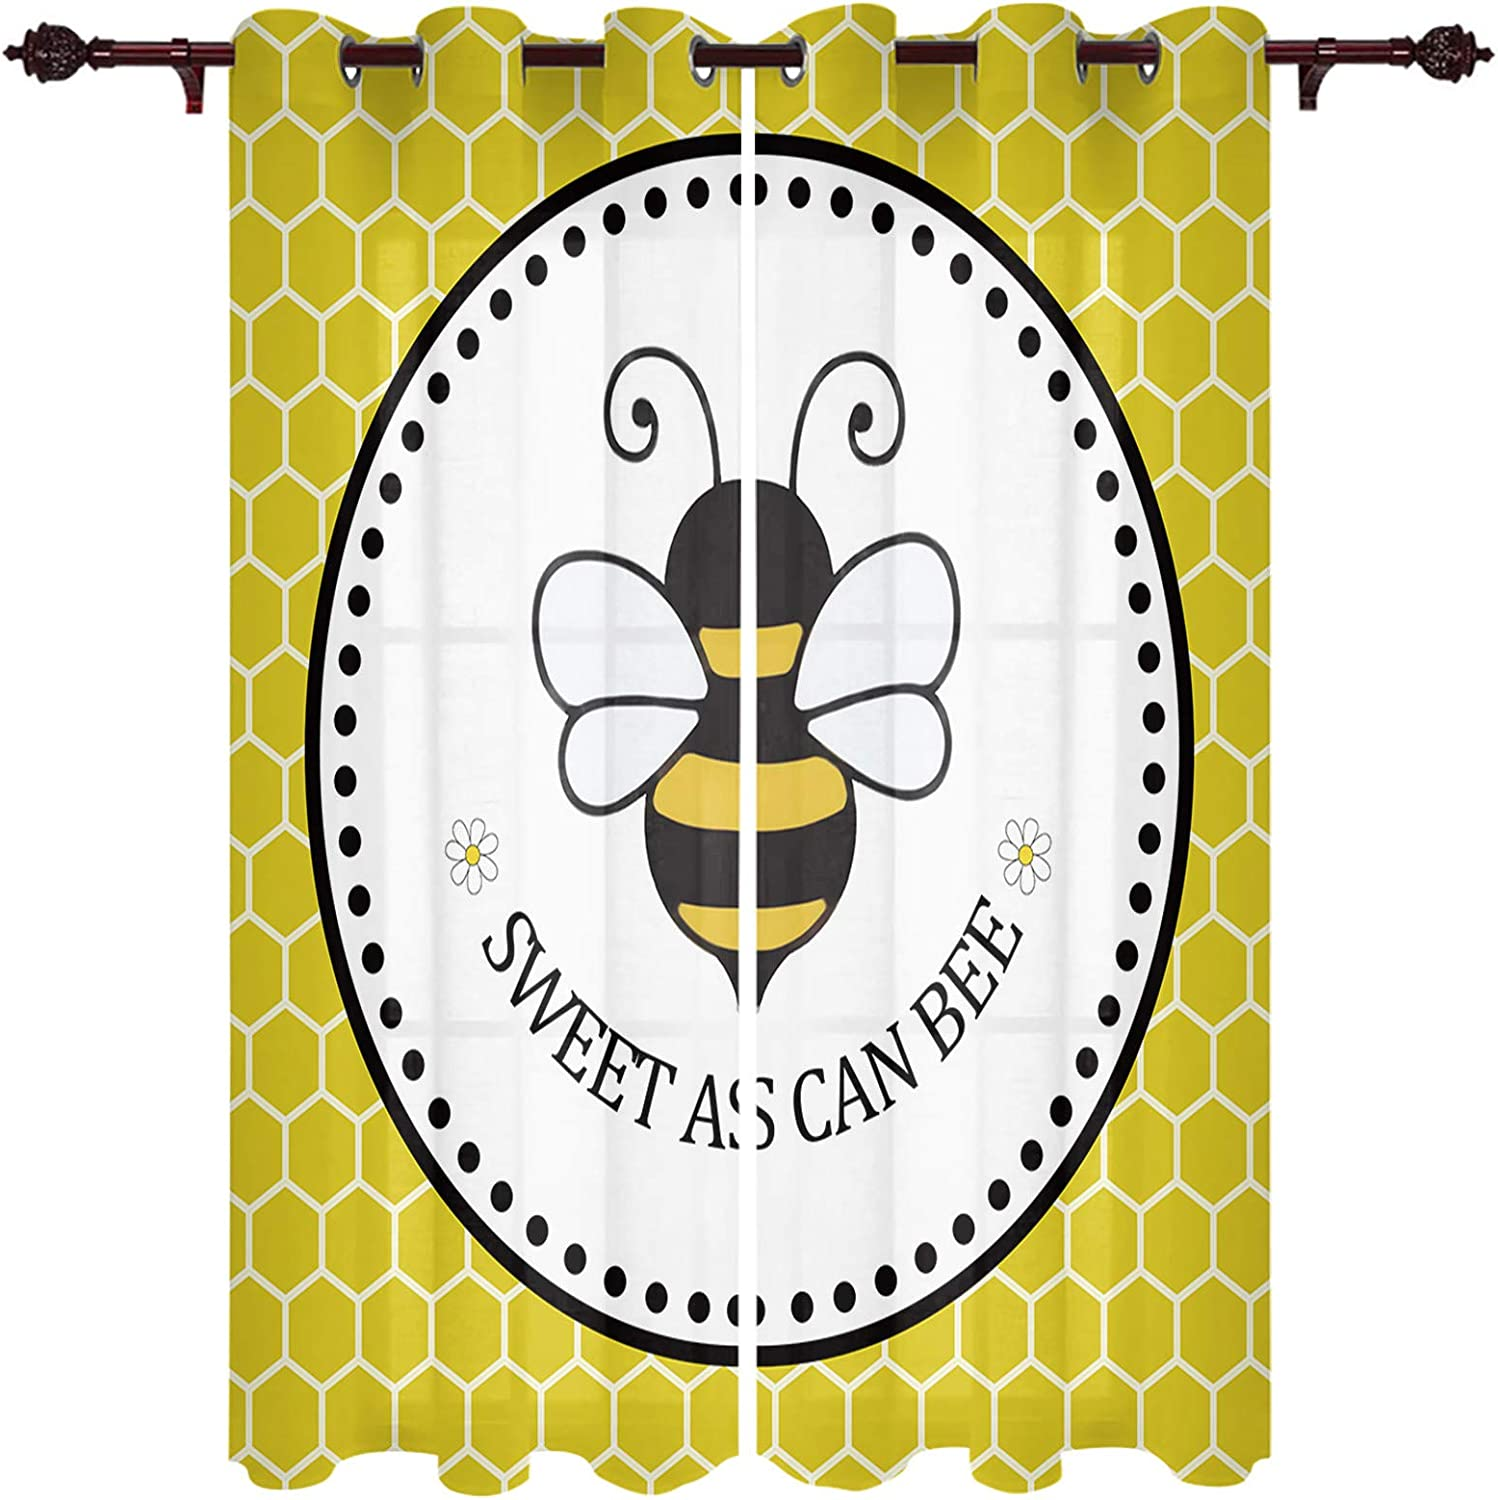 YEHO Art Gallery 2 Panels Yellow Curtain 2021 spring and summer new Honeycom Cash special price Window